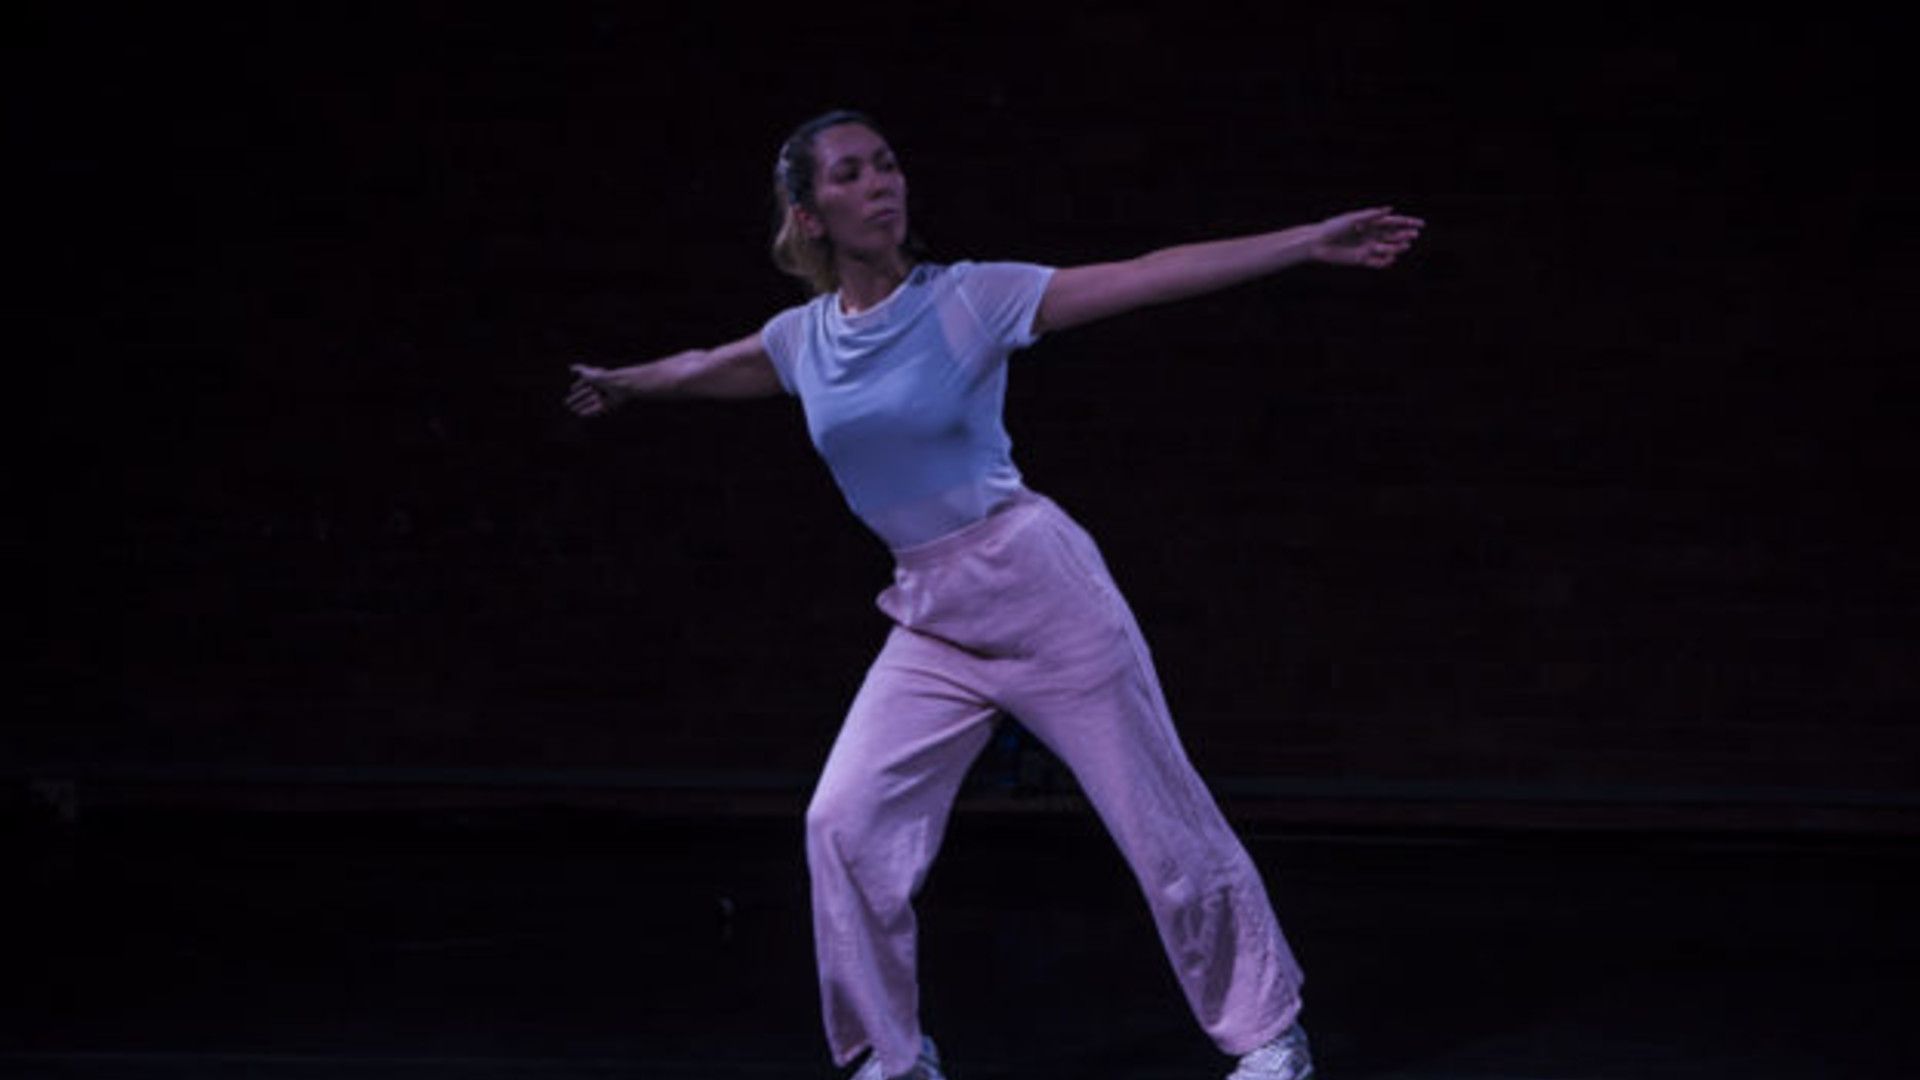 A dancer stands with one knee bend and both arms outstretched.